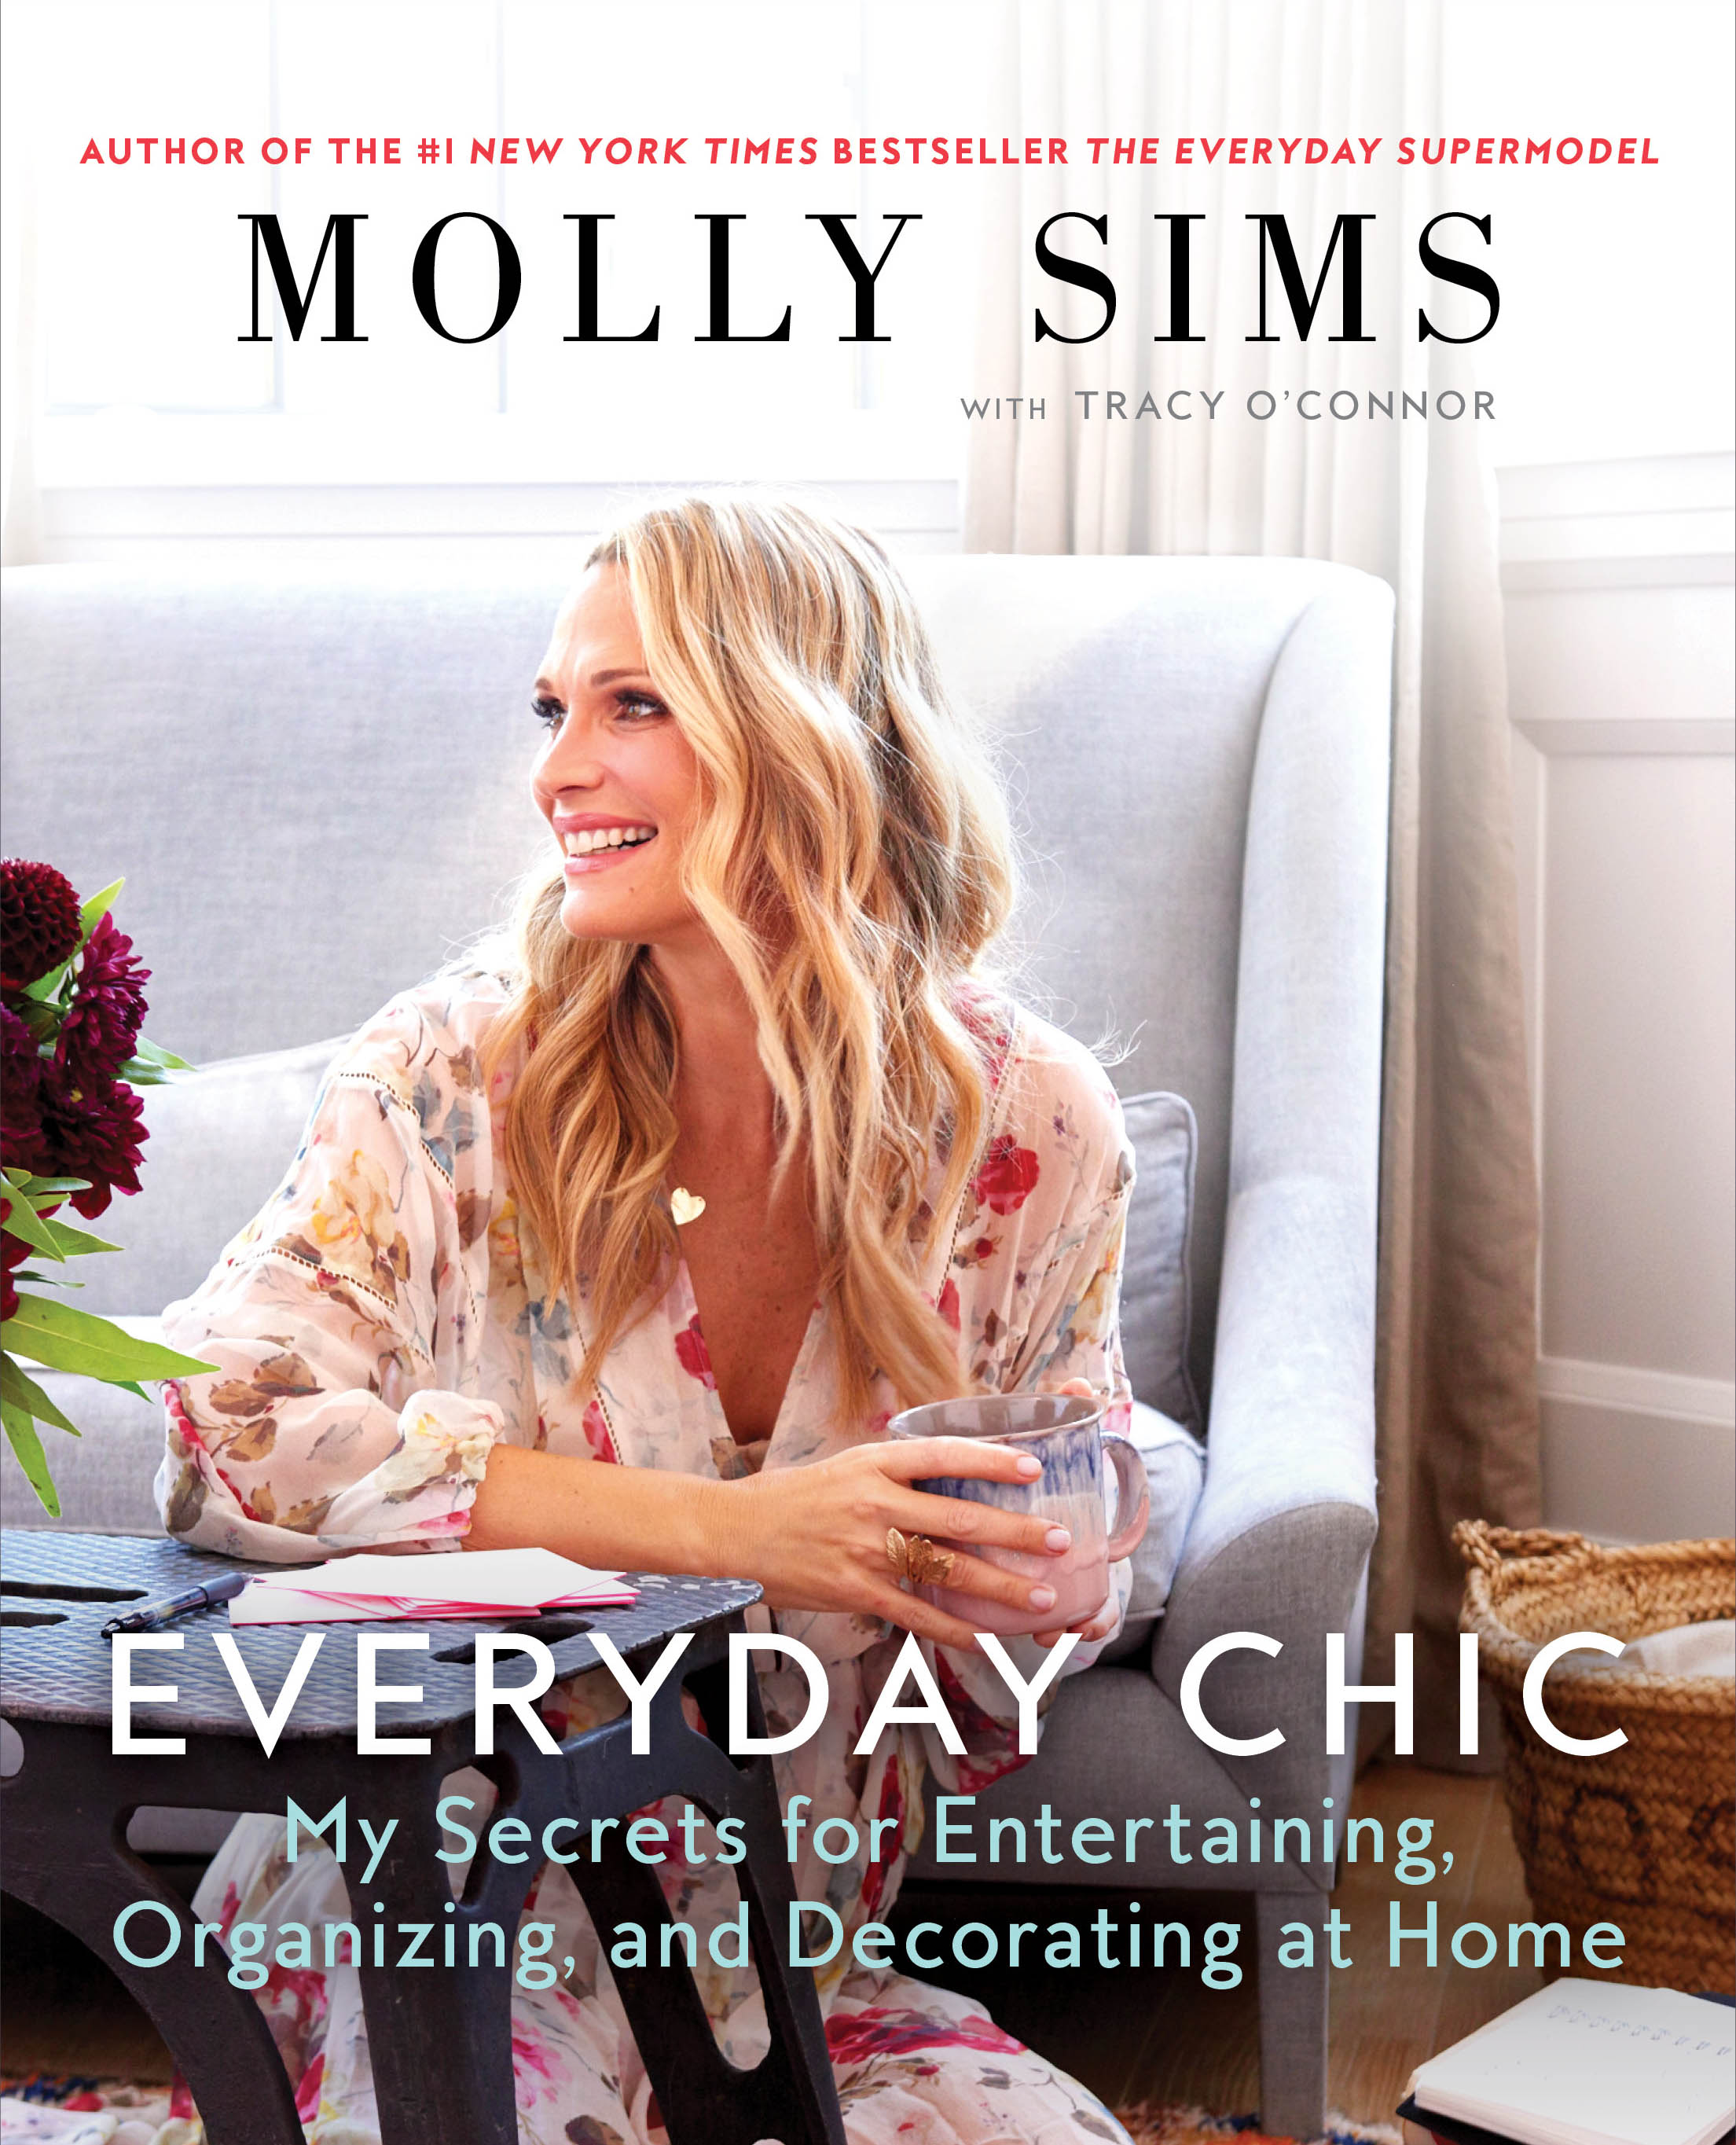 EverydayChic Molly Sims (1).jpg